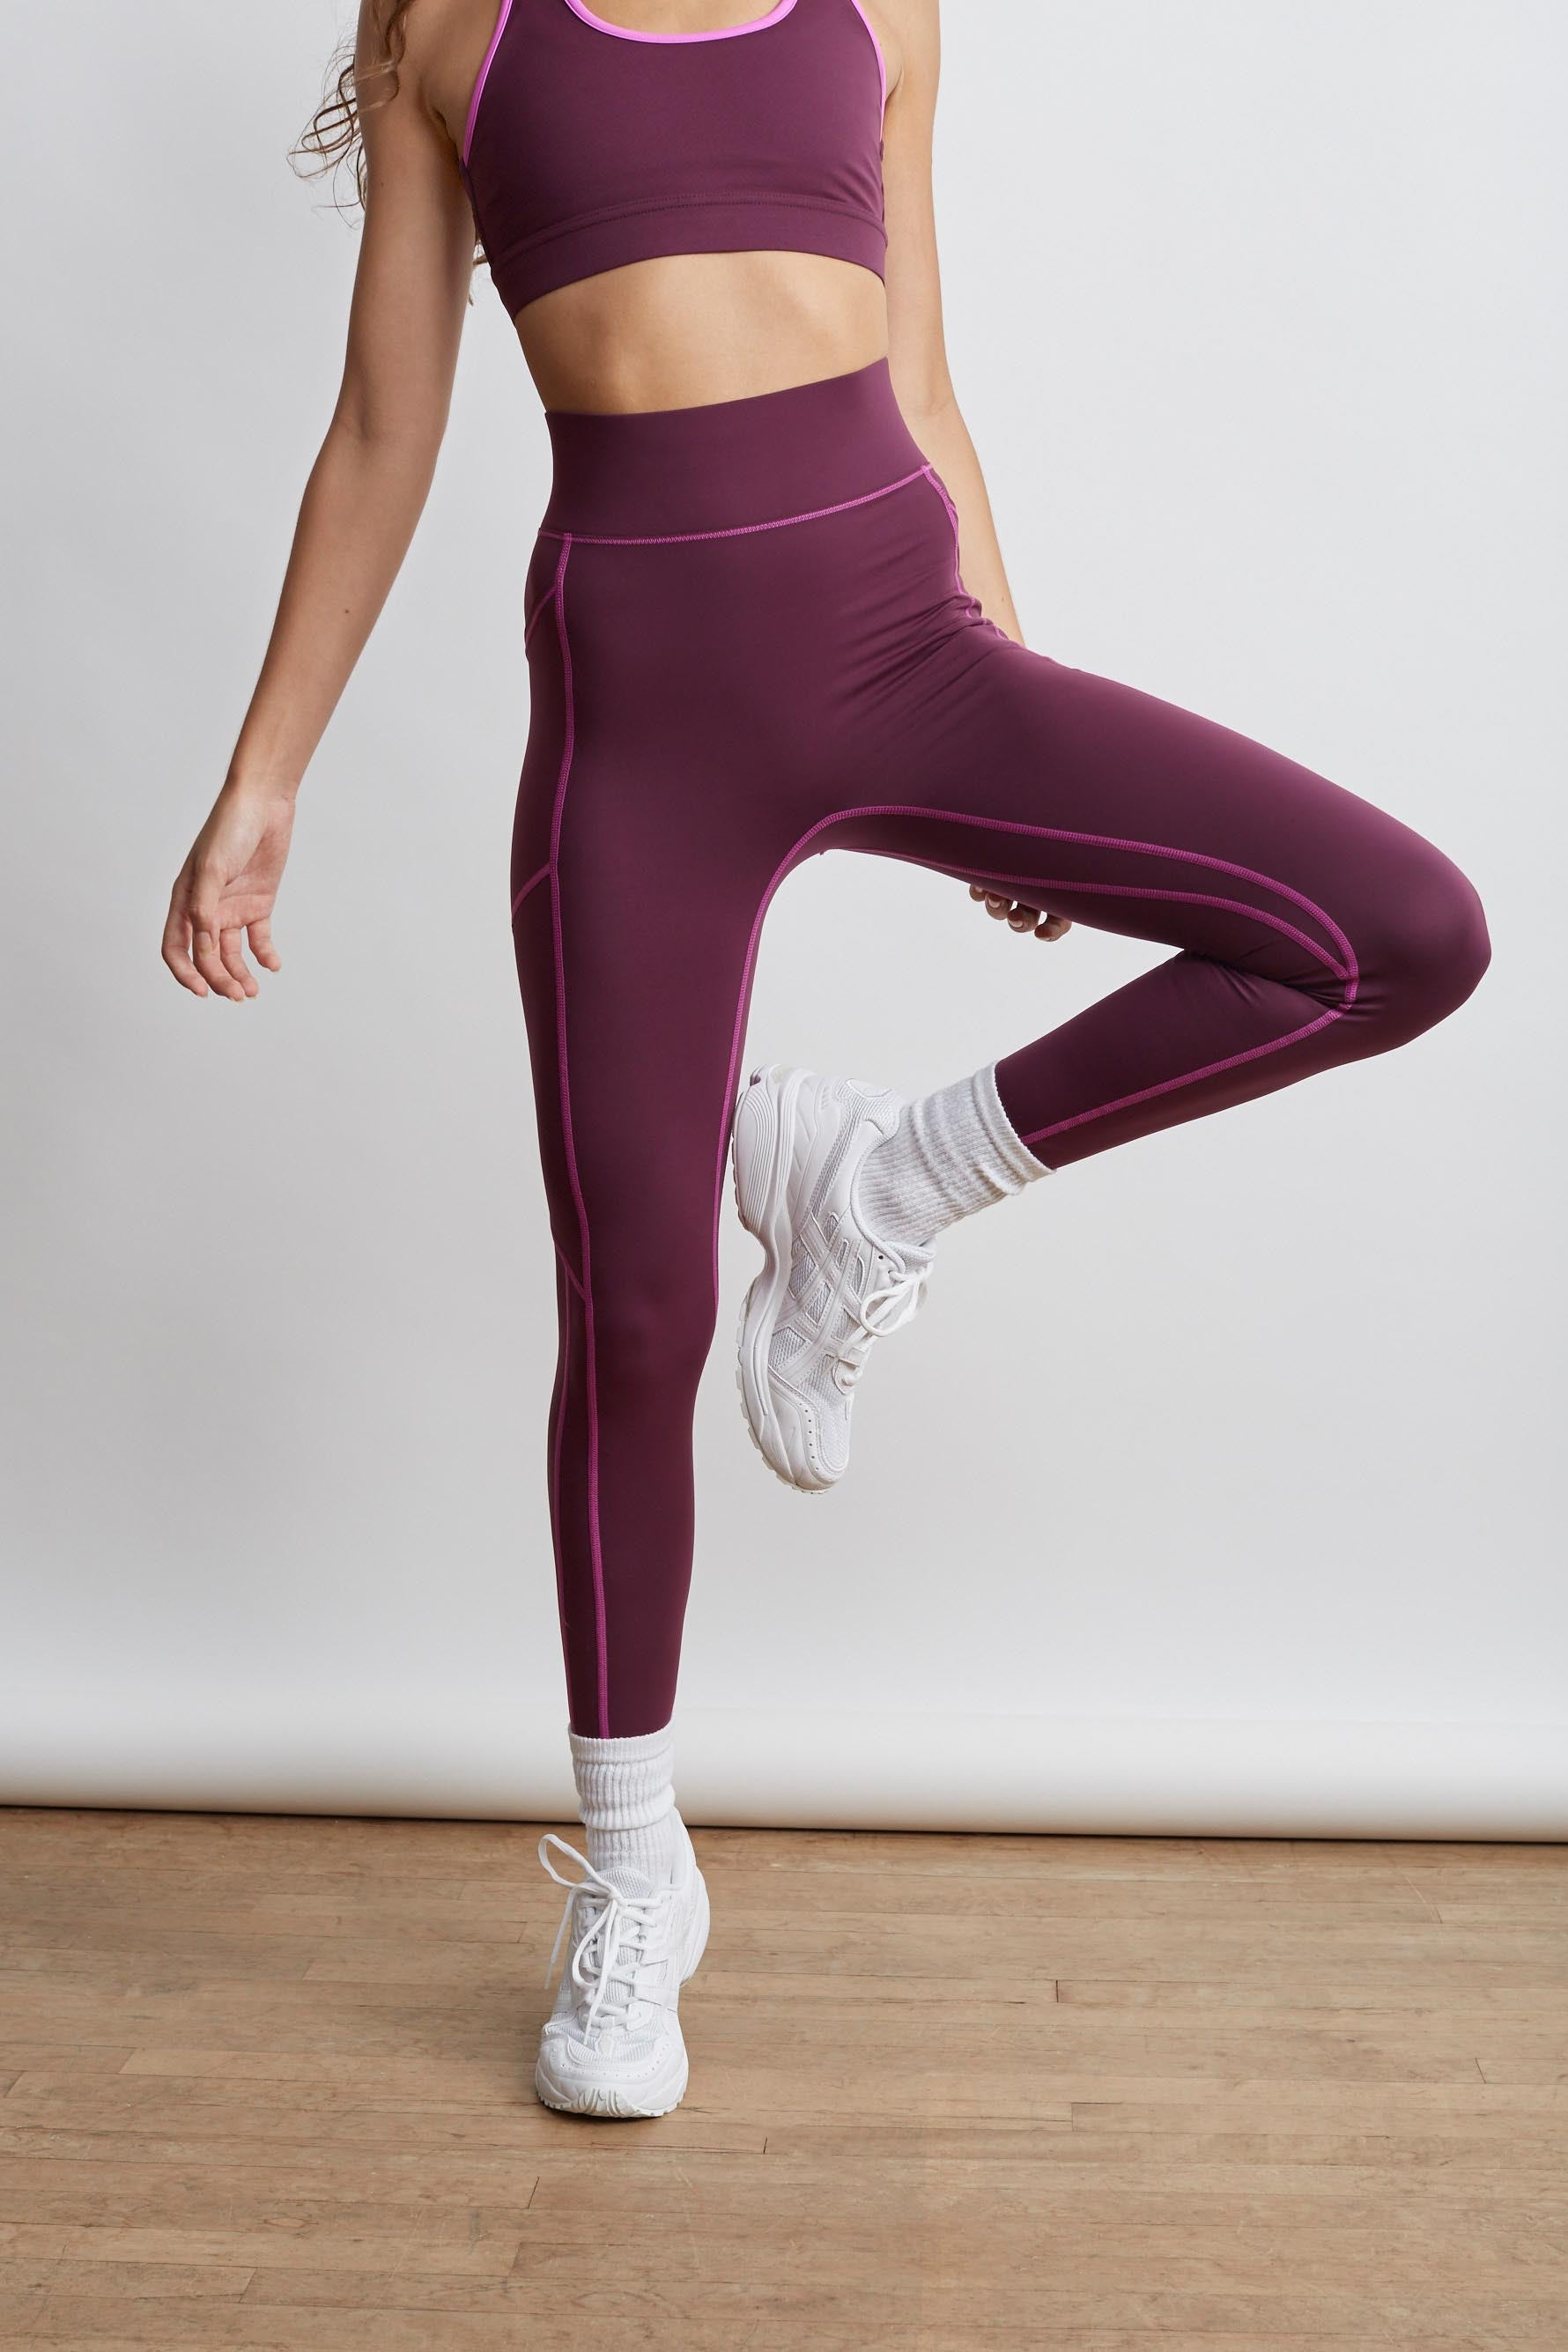 Center Stage Pocket Leggings in Mulberry Bandier